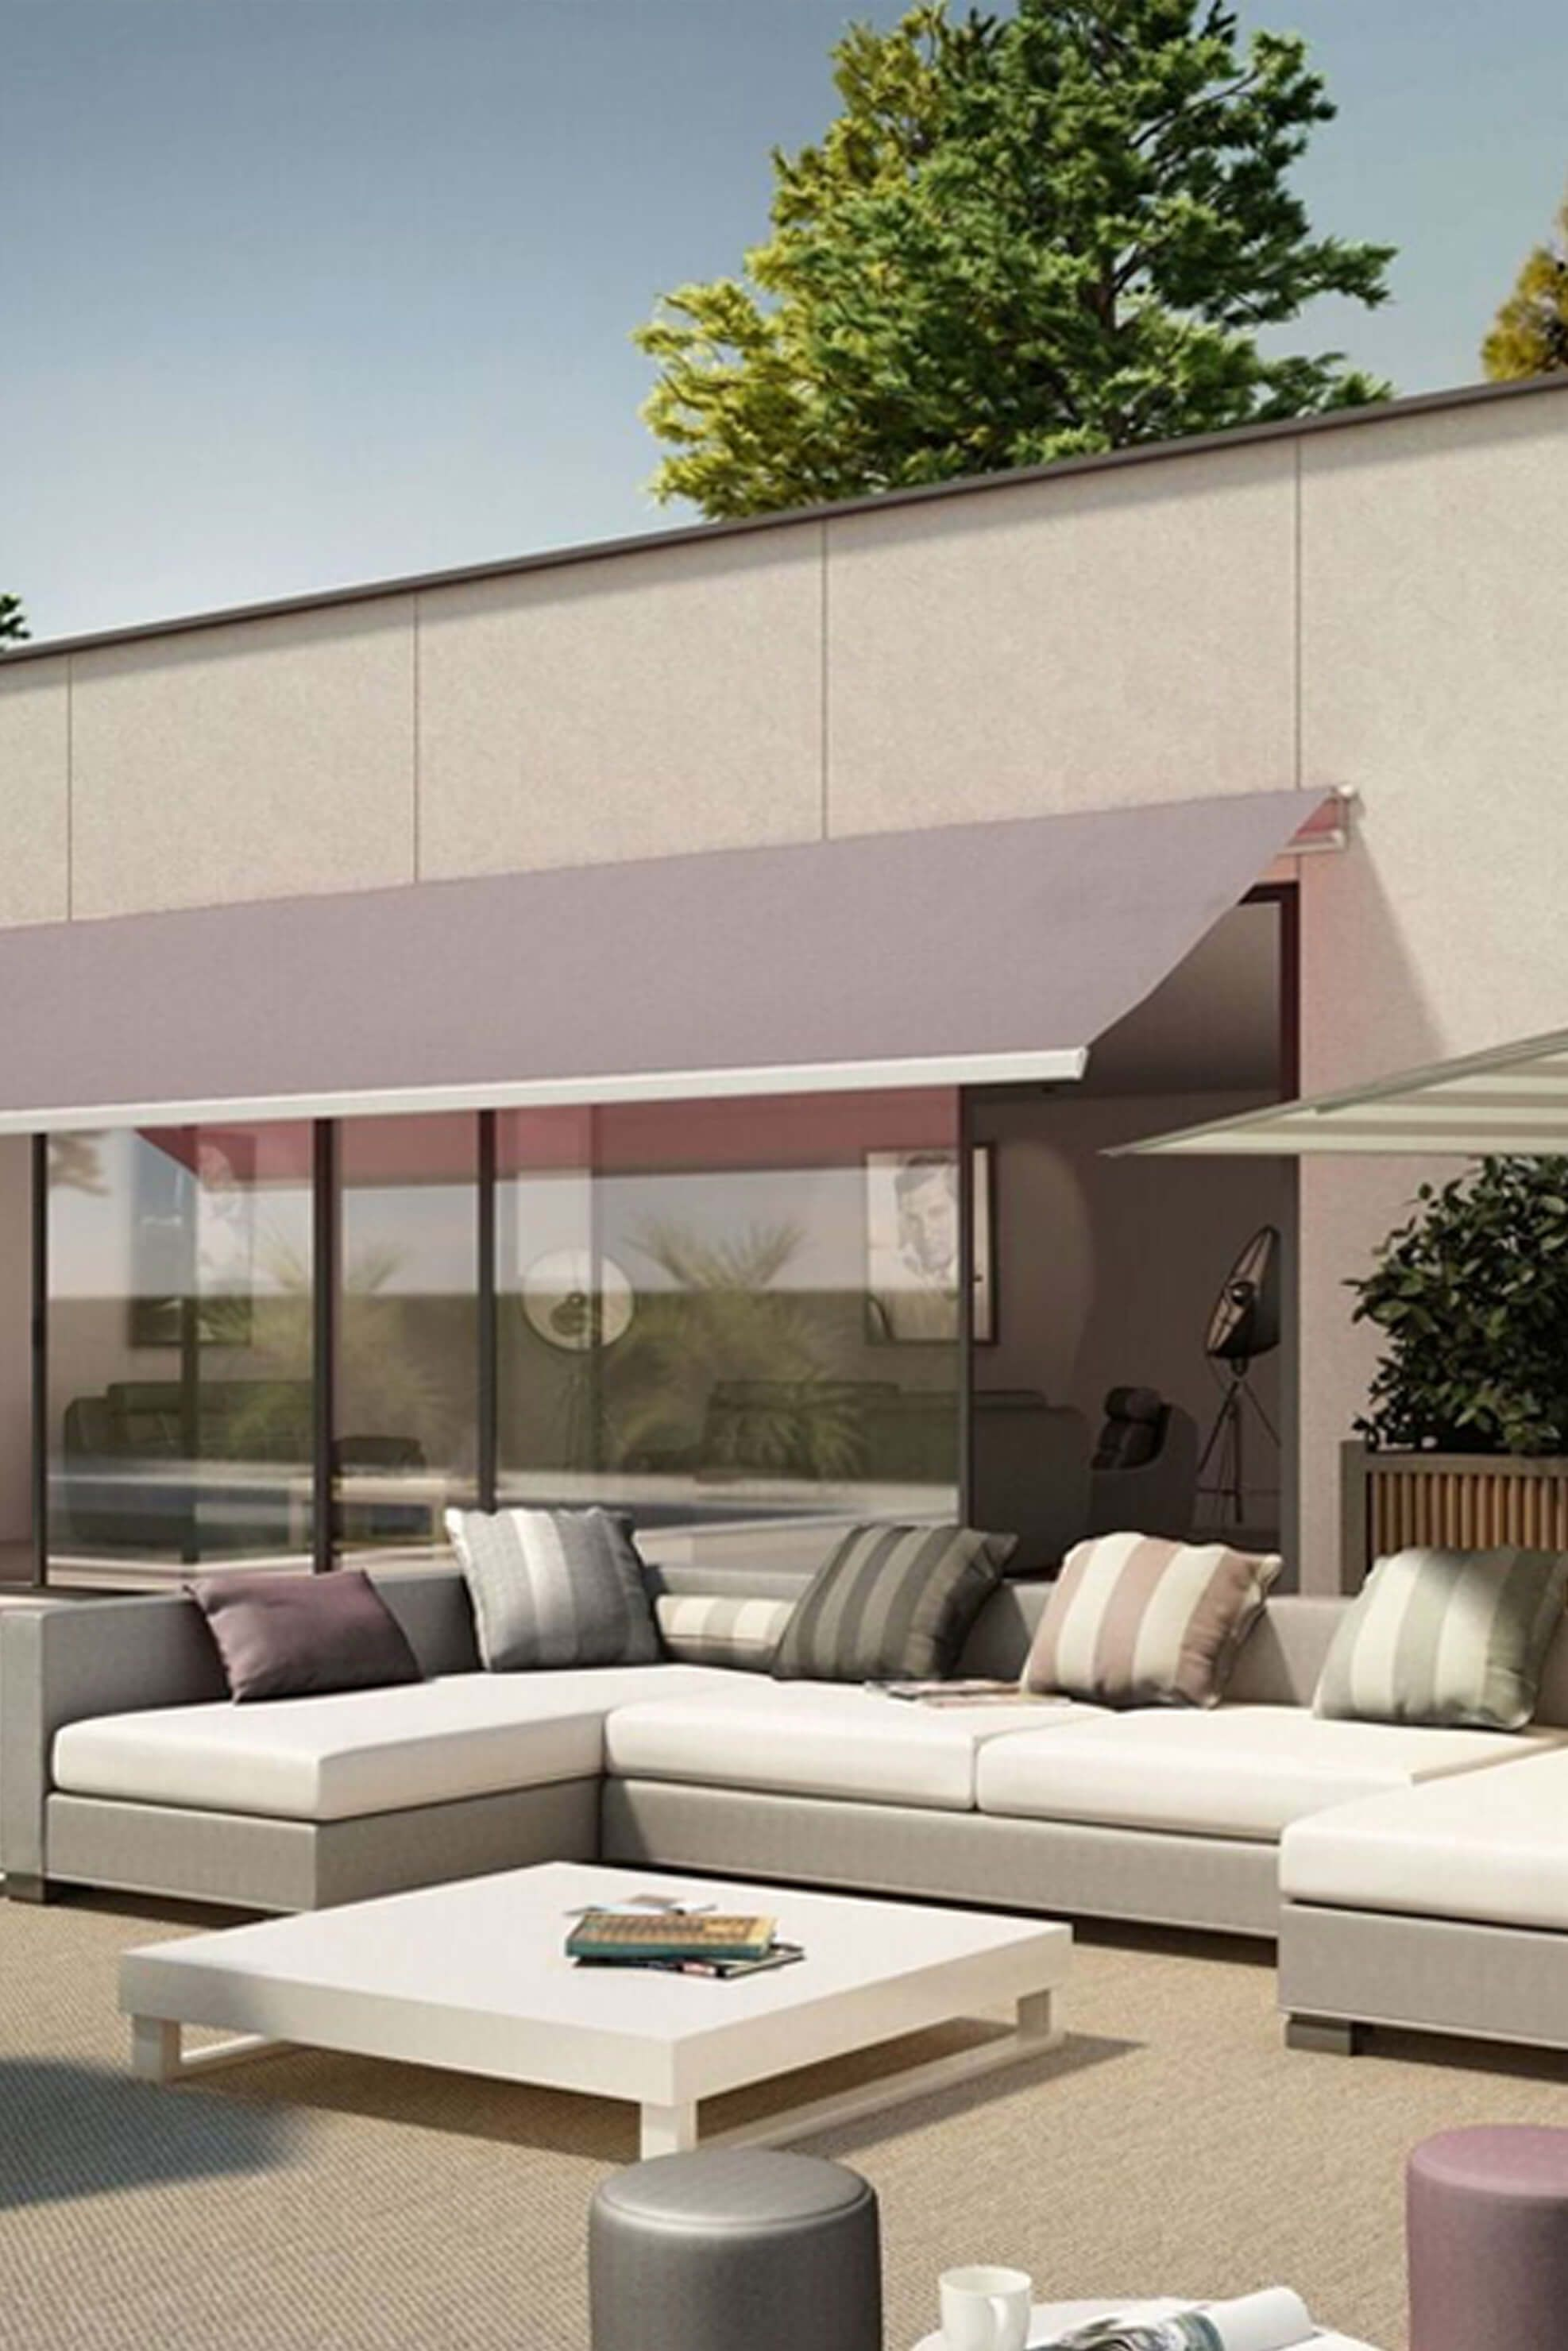 Retractable Awning Shading Patio Furniture Awning Shade Outdoor